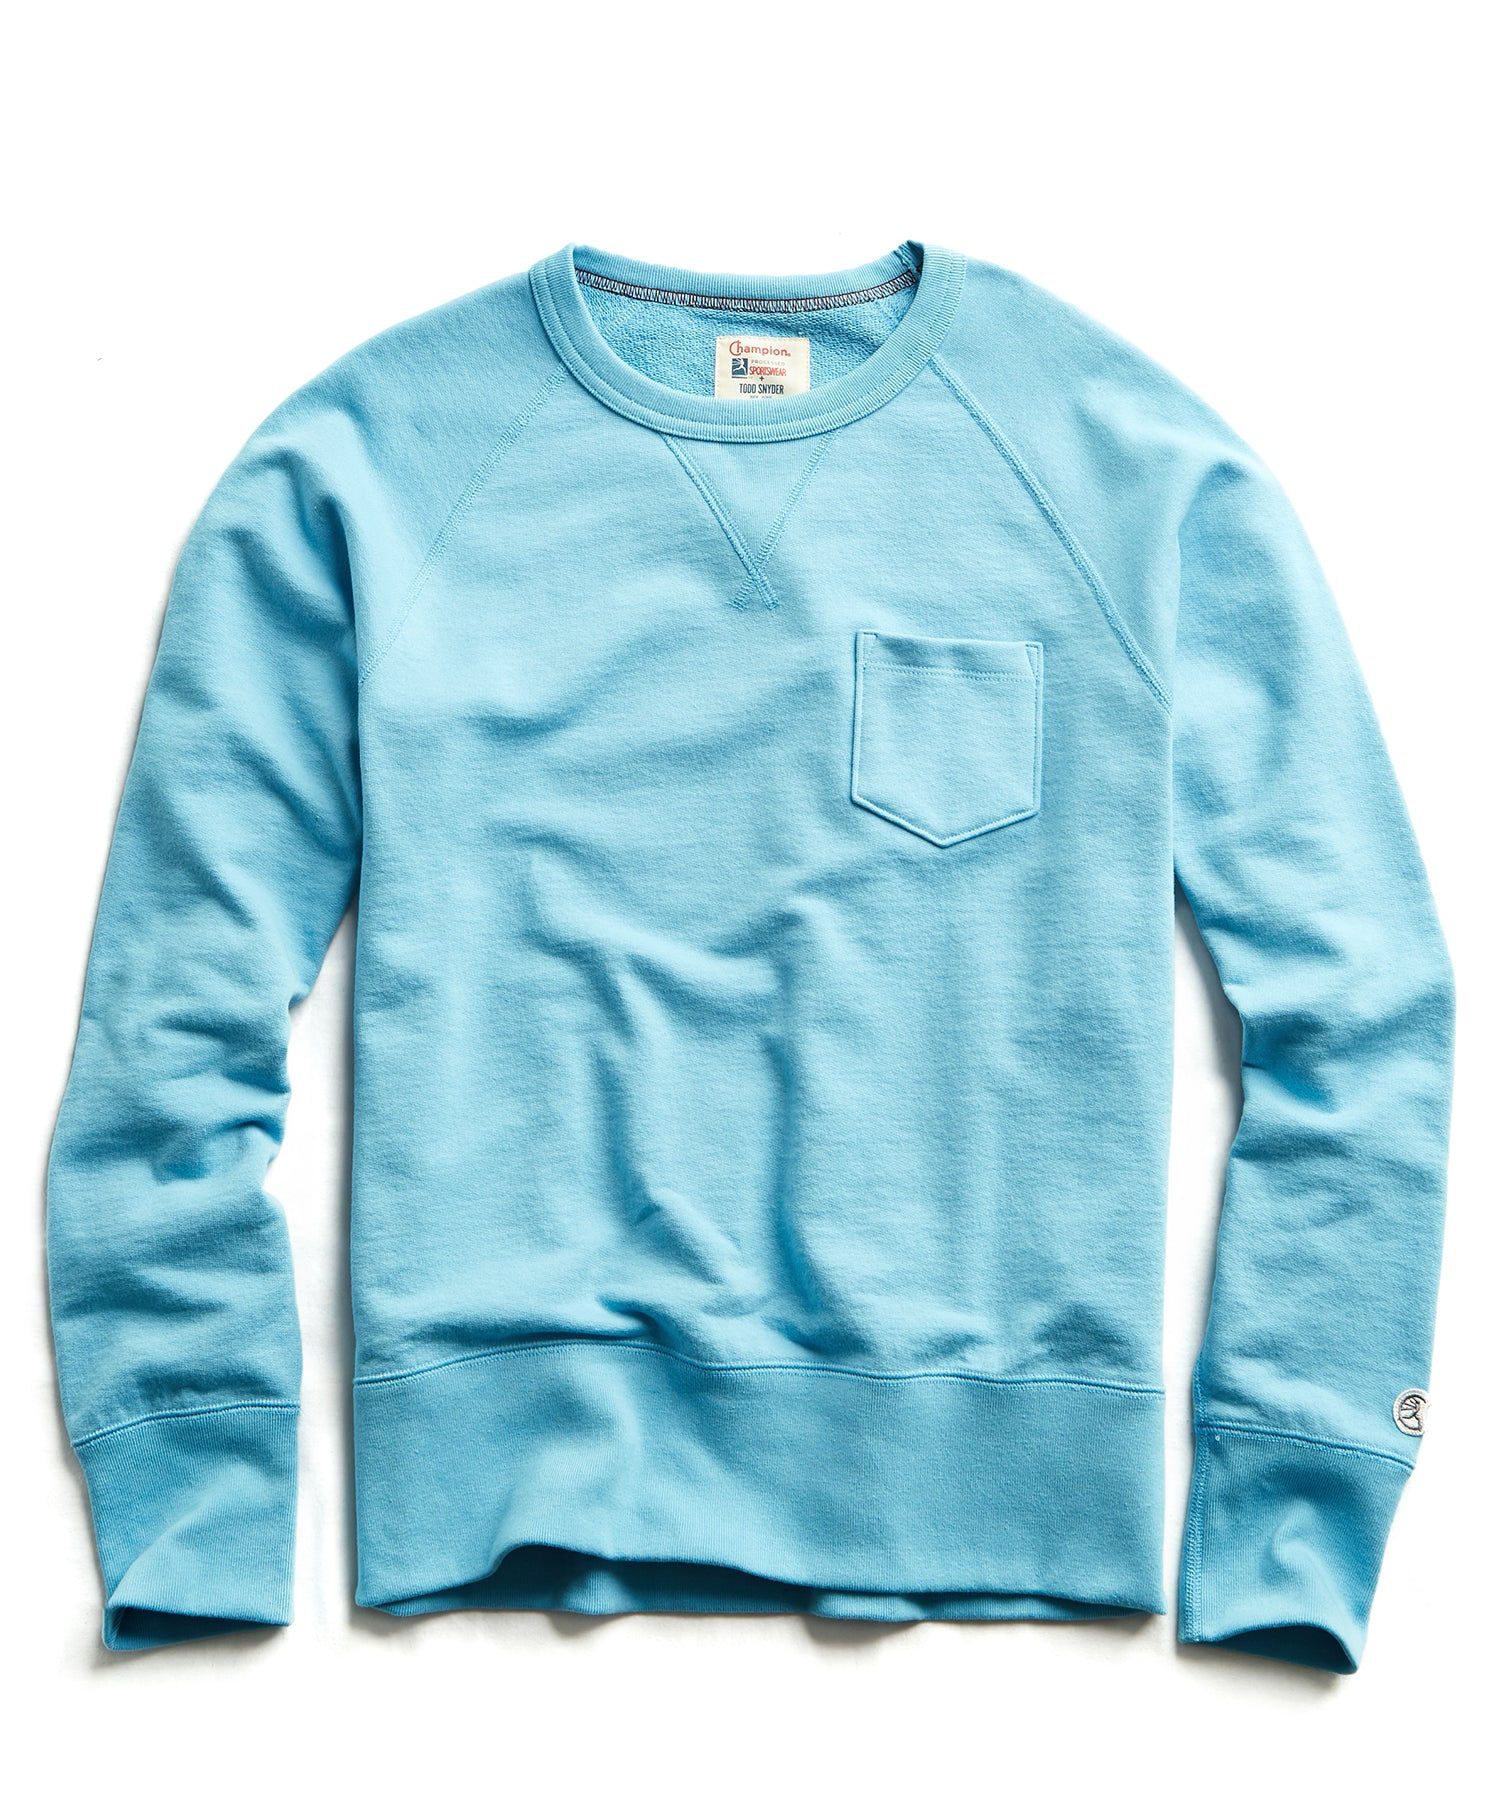 Terry Pocket Sweatshirt in Pool Blue